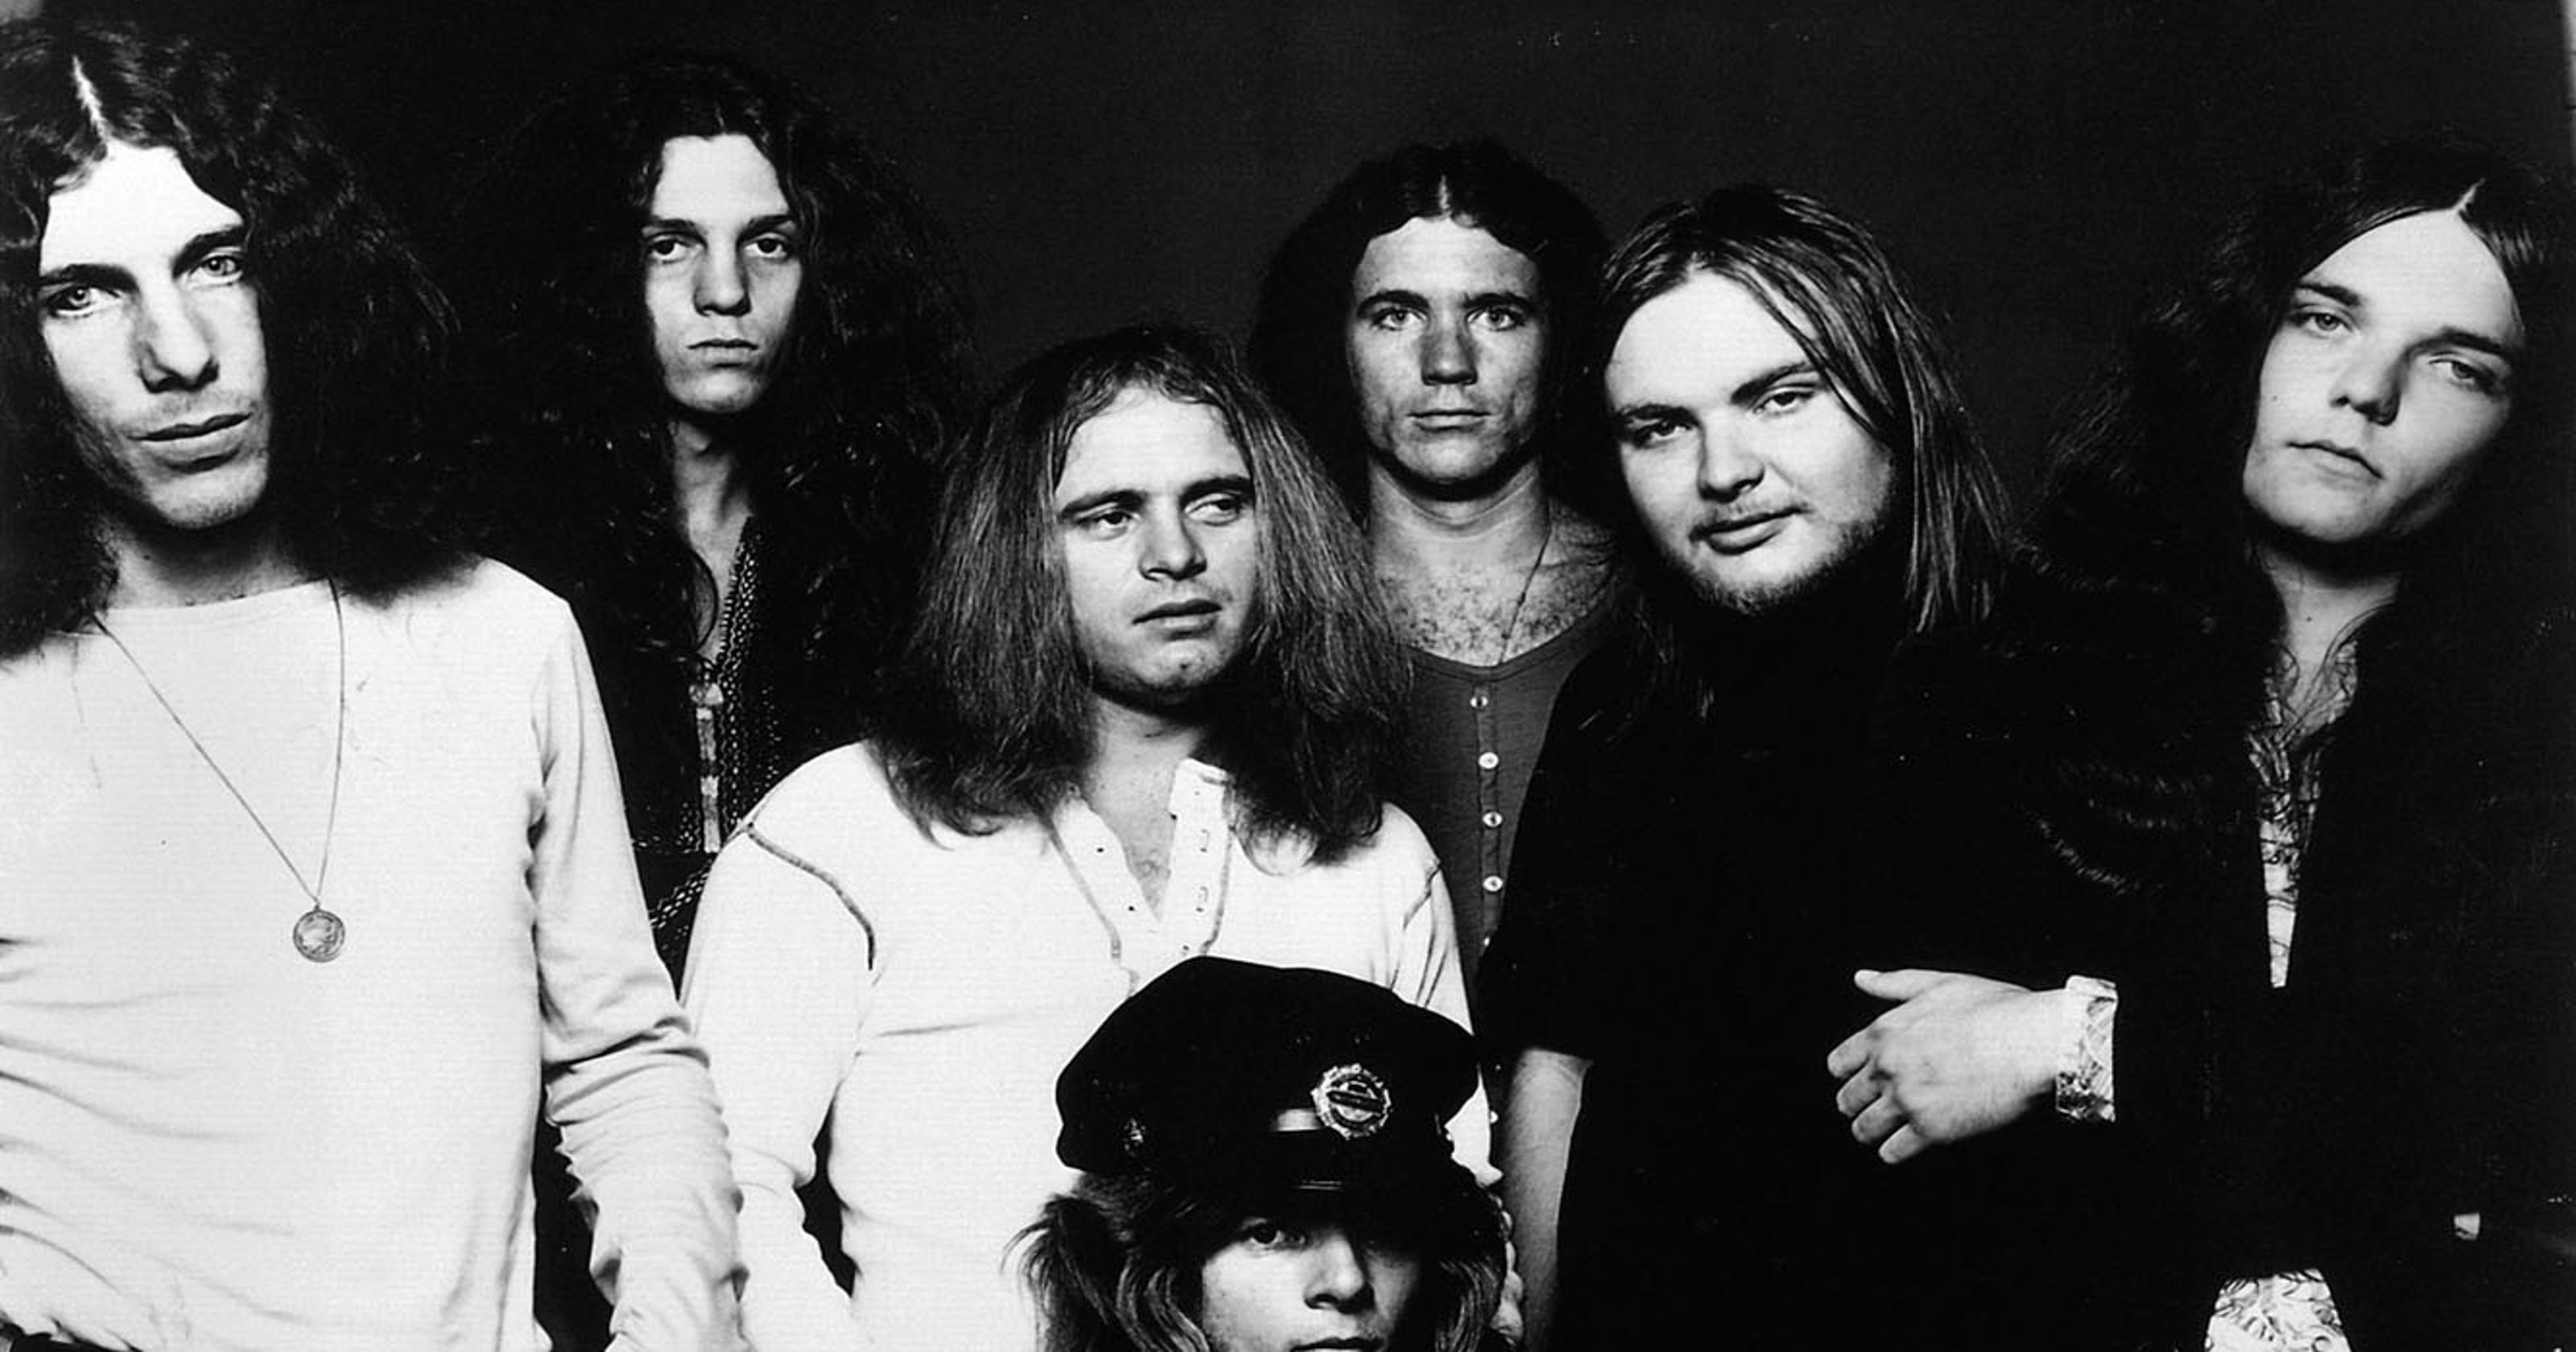 862ef7cf4a1 Ex-Lynyrd Skynyrd drummer Robert Burns Jr. dies at 64